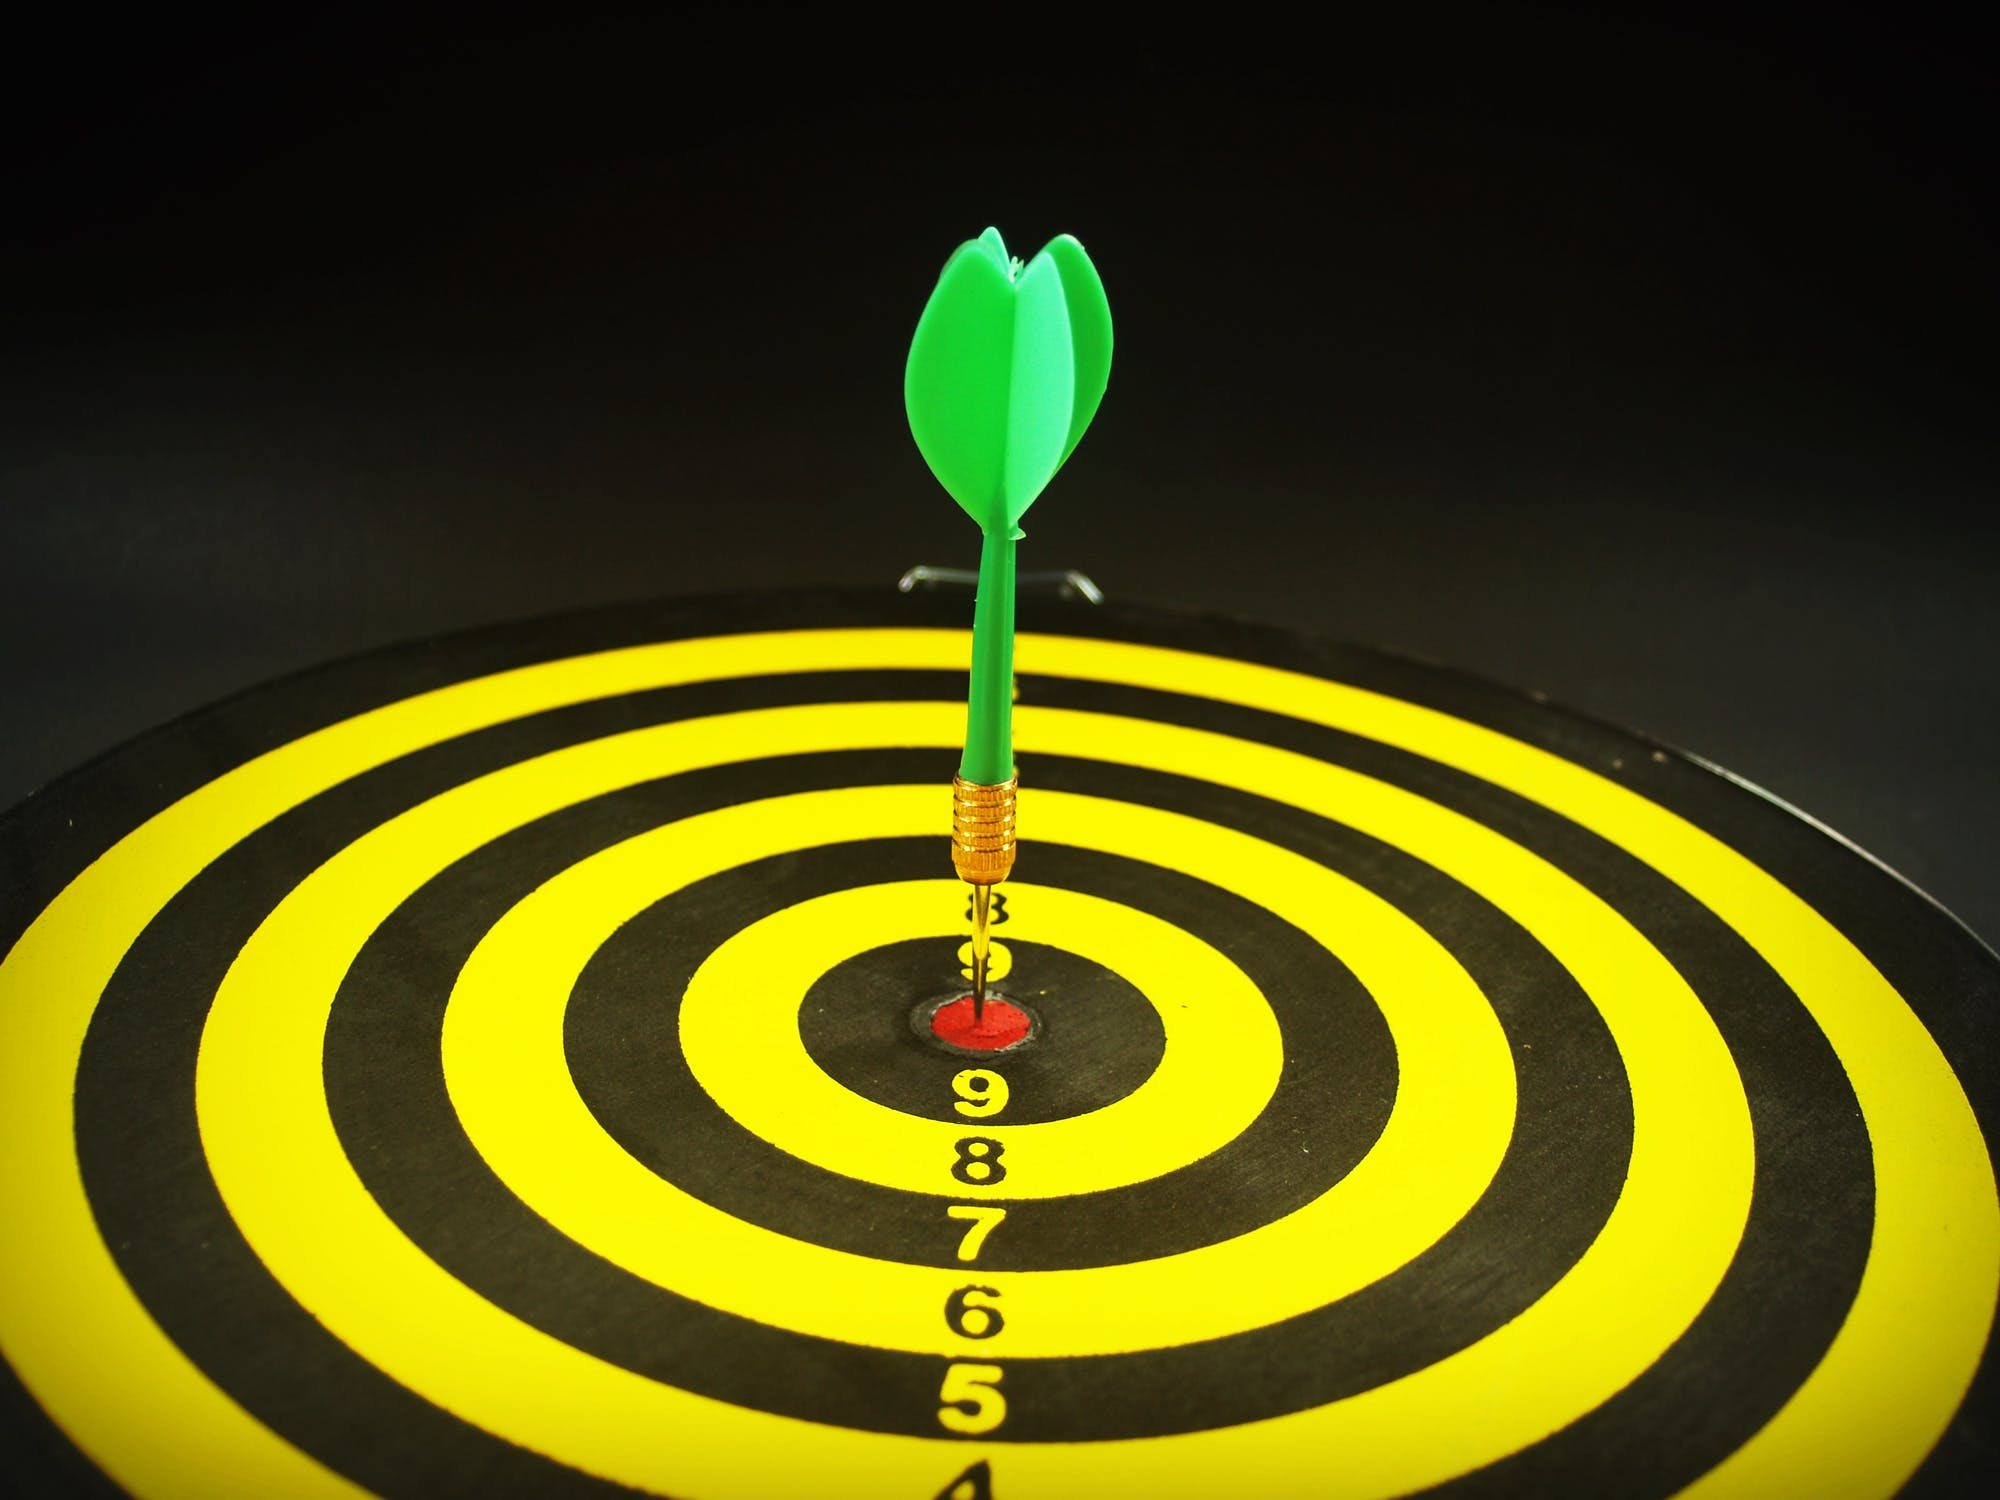 A dart sitting in the center of a target.